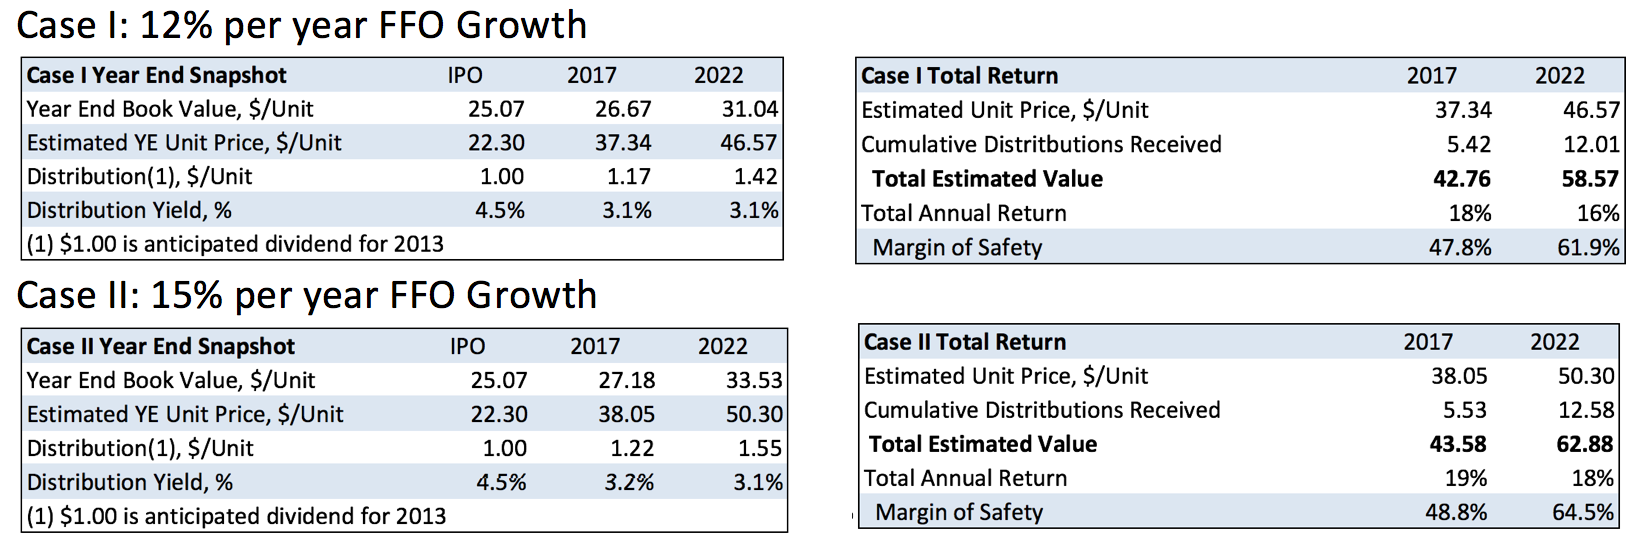 bpy-corrected-valuation-table-for-0413-post